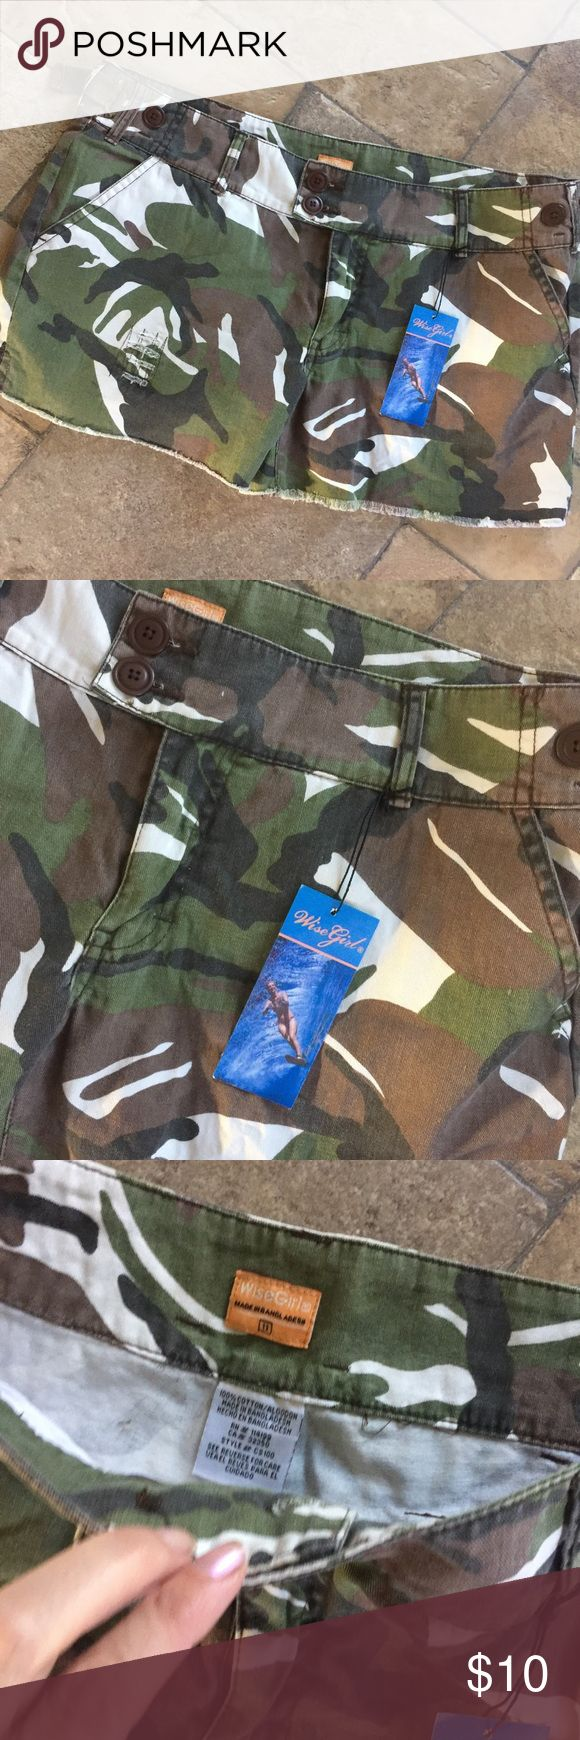 Wise Girl Camouflage Shorts NWT New with tags camouflage shorts by Wise Girl,Sz 11 Wise Girl Shorts